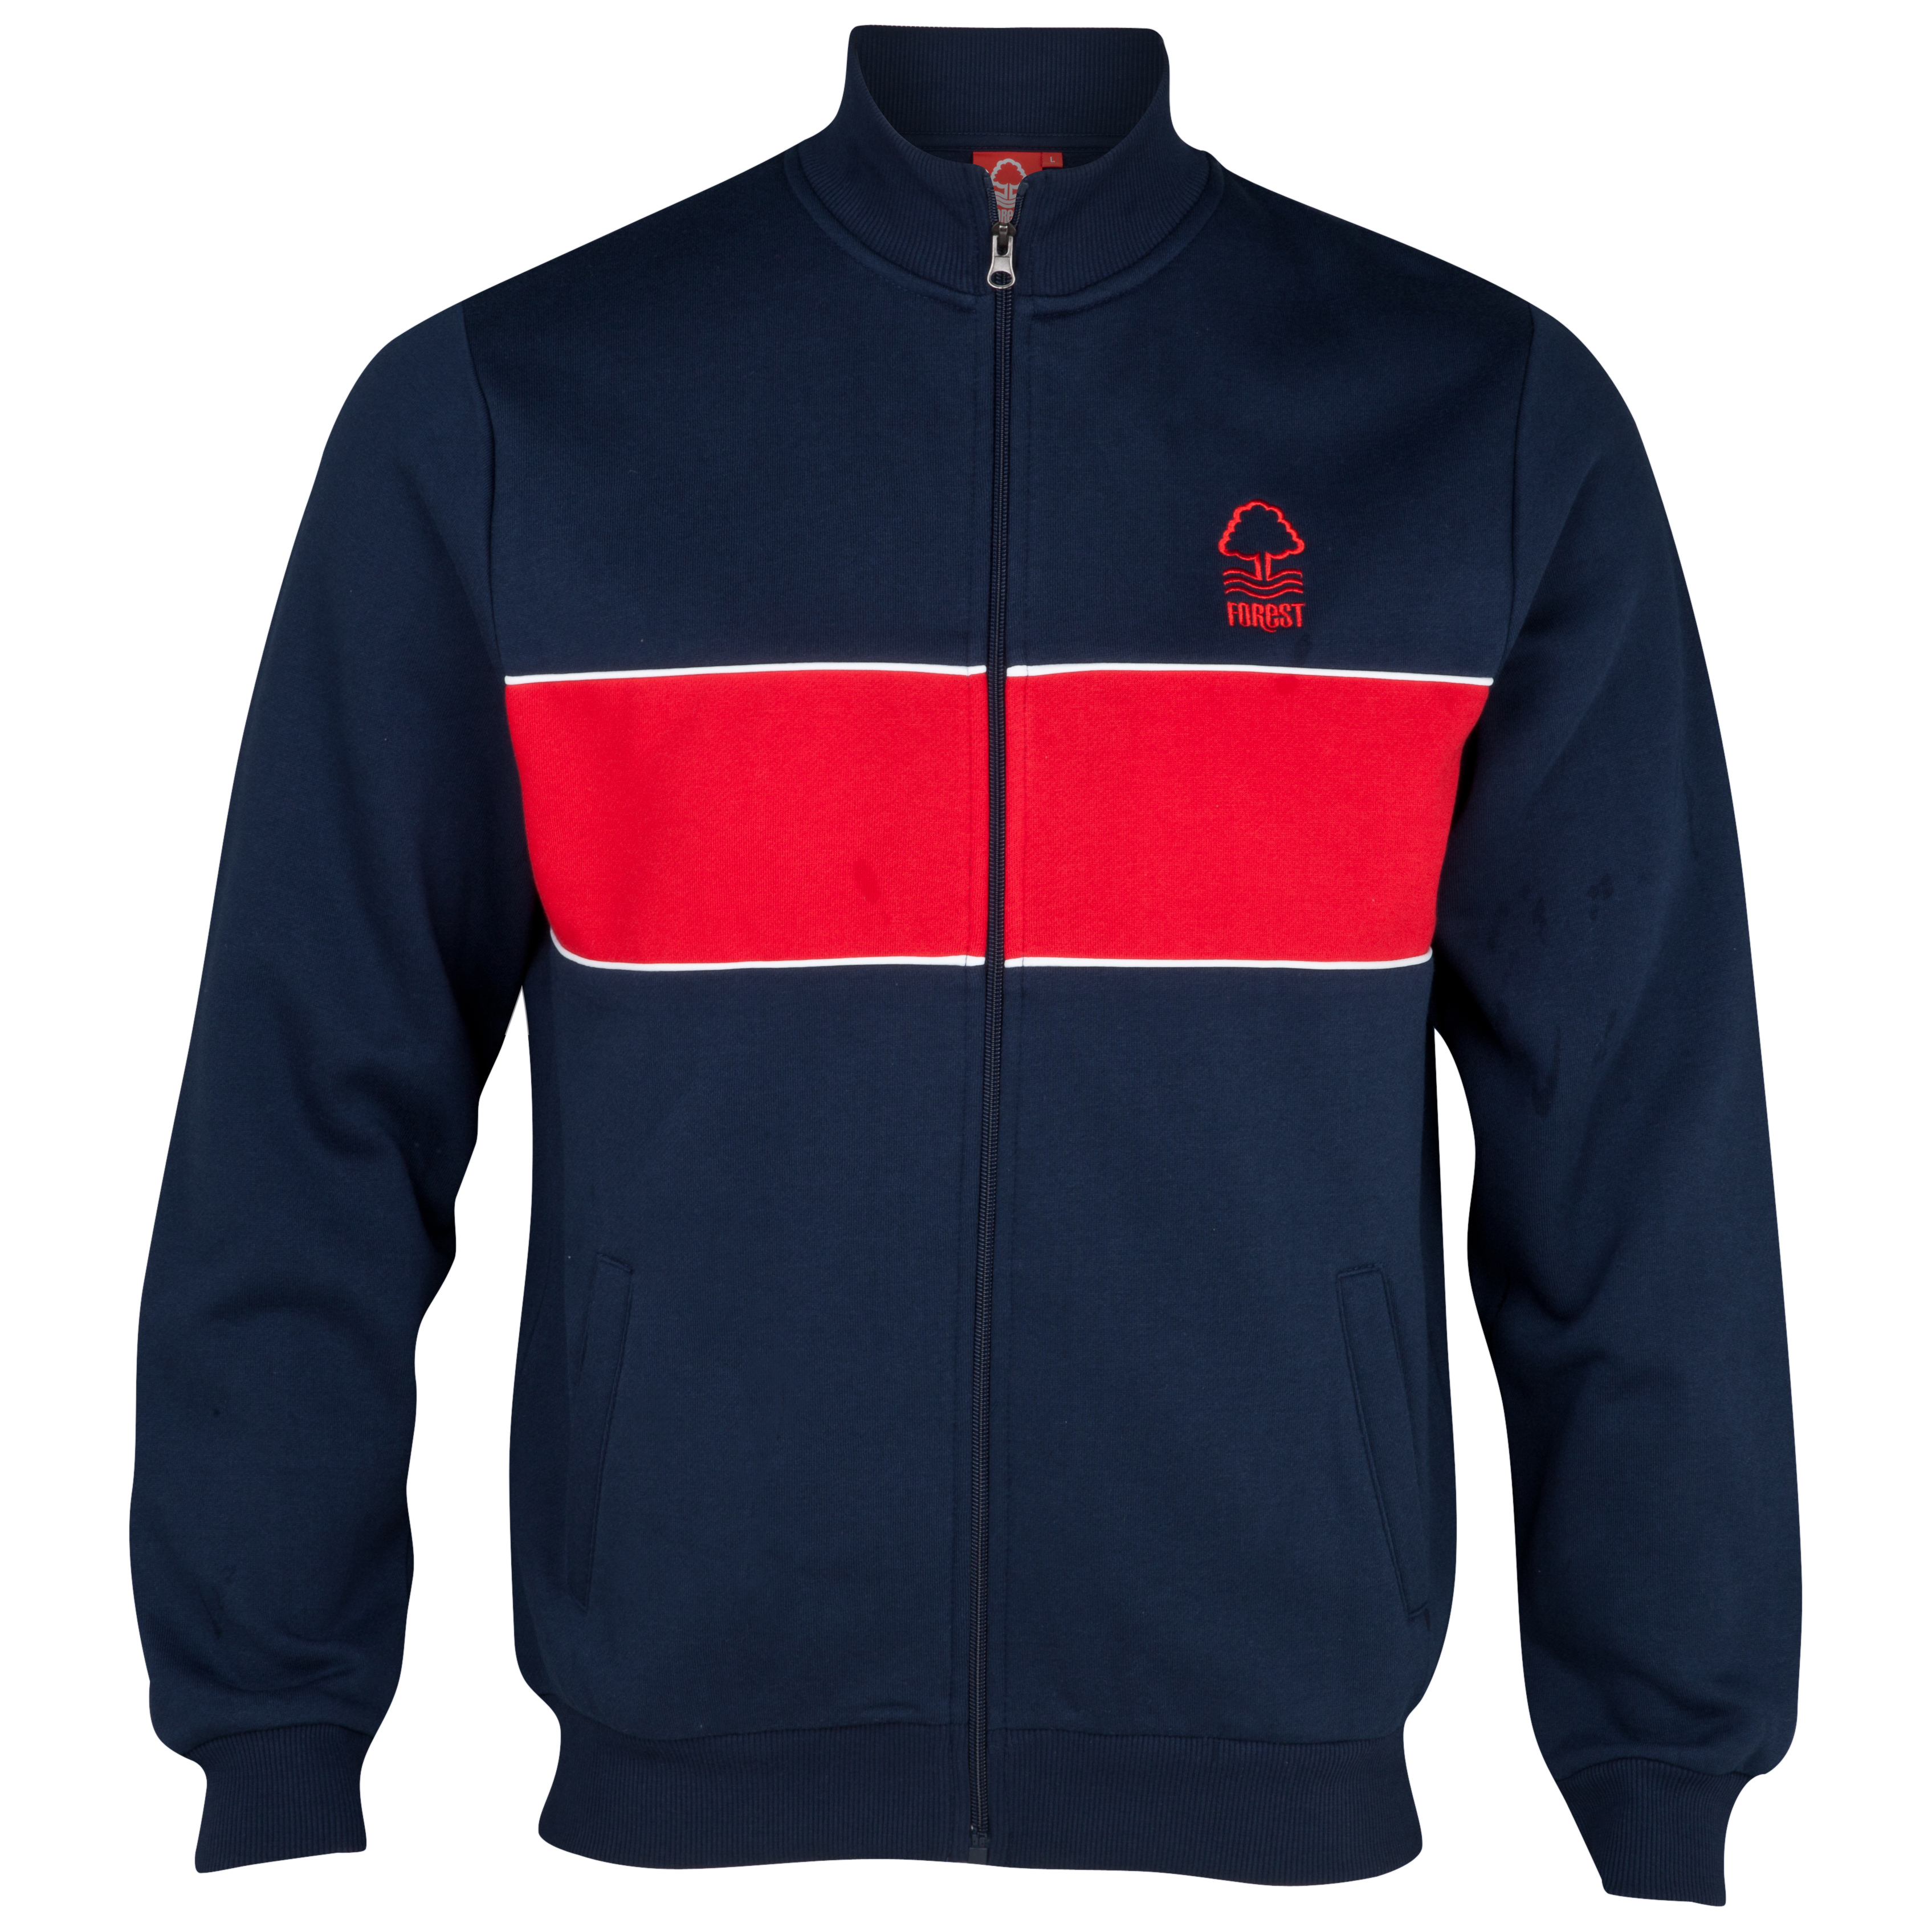 Nottingham Forest Essential Hatrick Track Top - Navy/Red - Infant Boys